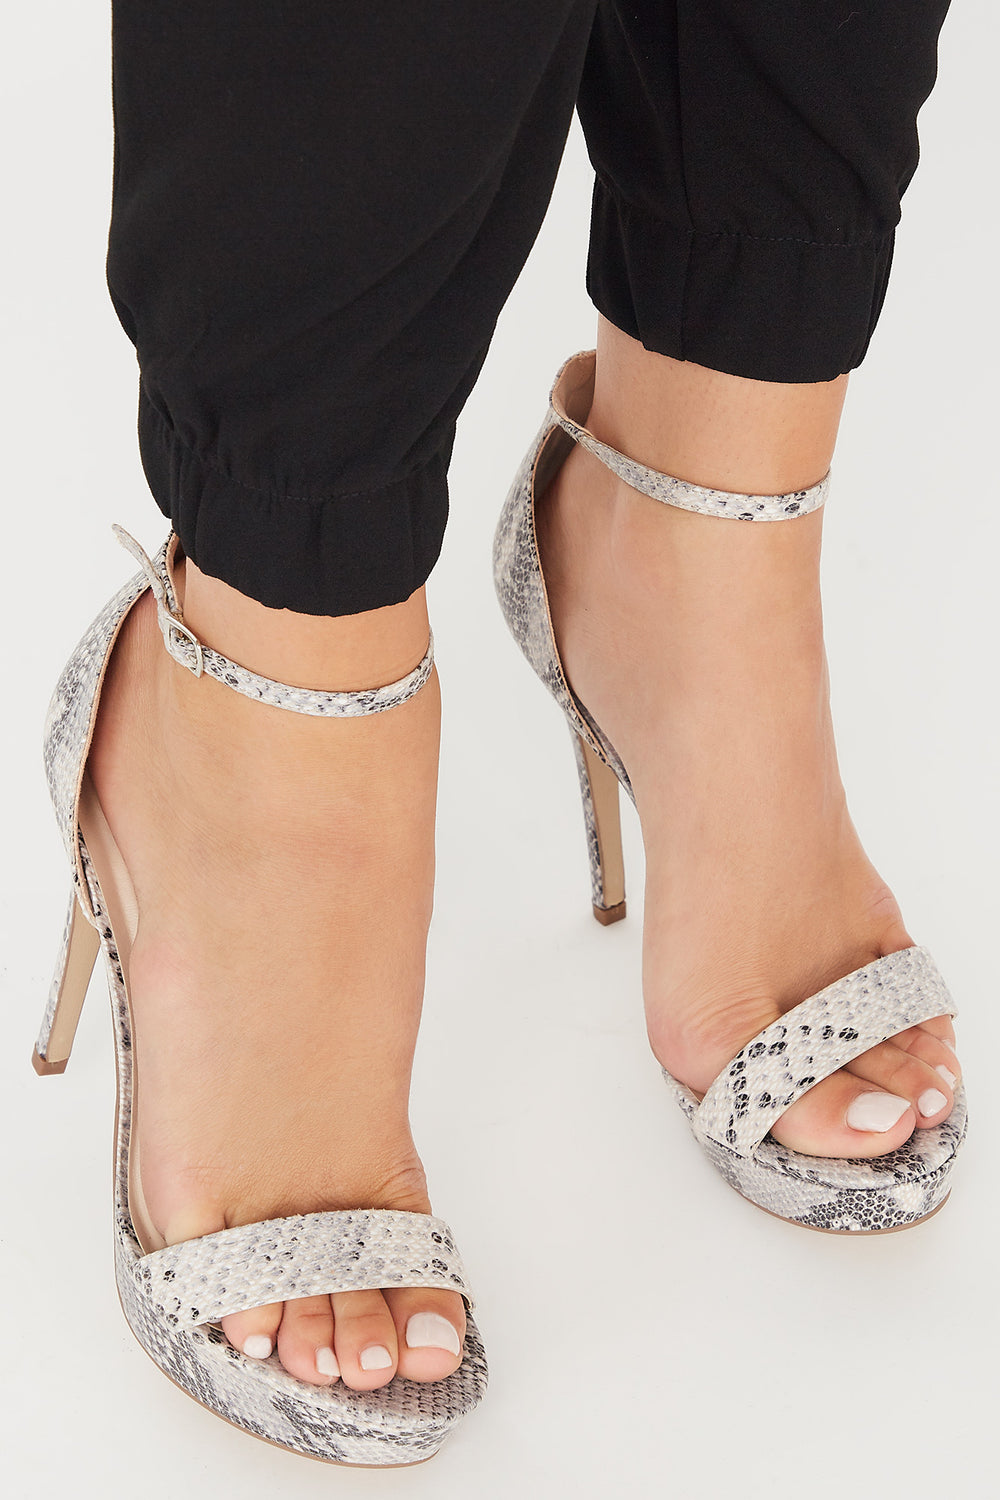 Open-Toe Platform Stiletto Heel Sandal Black with White